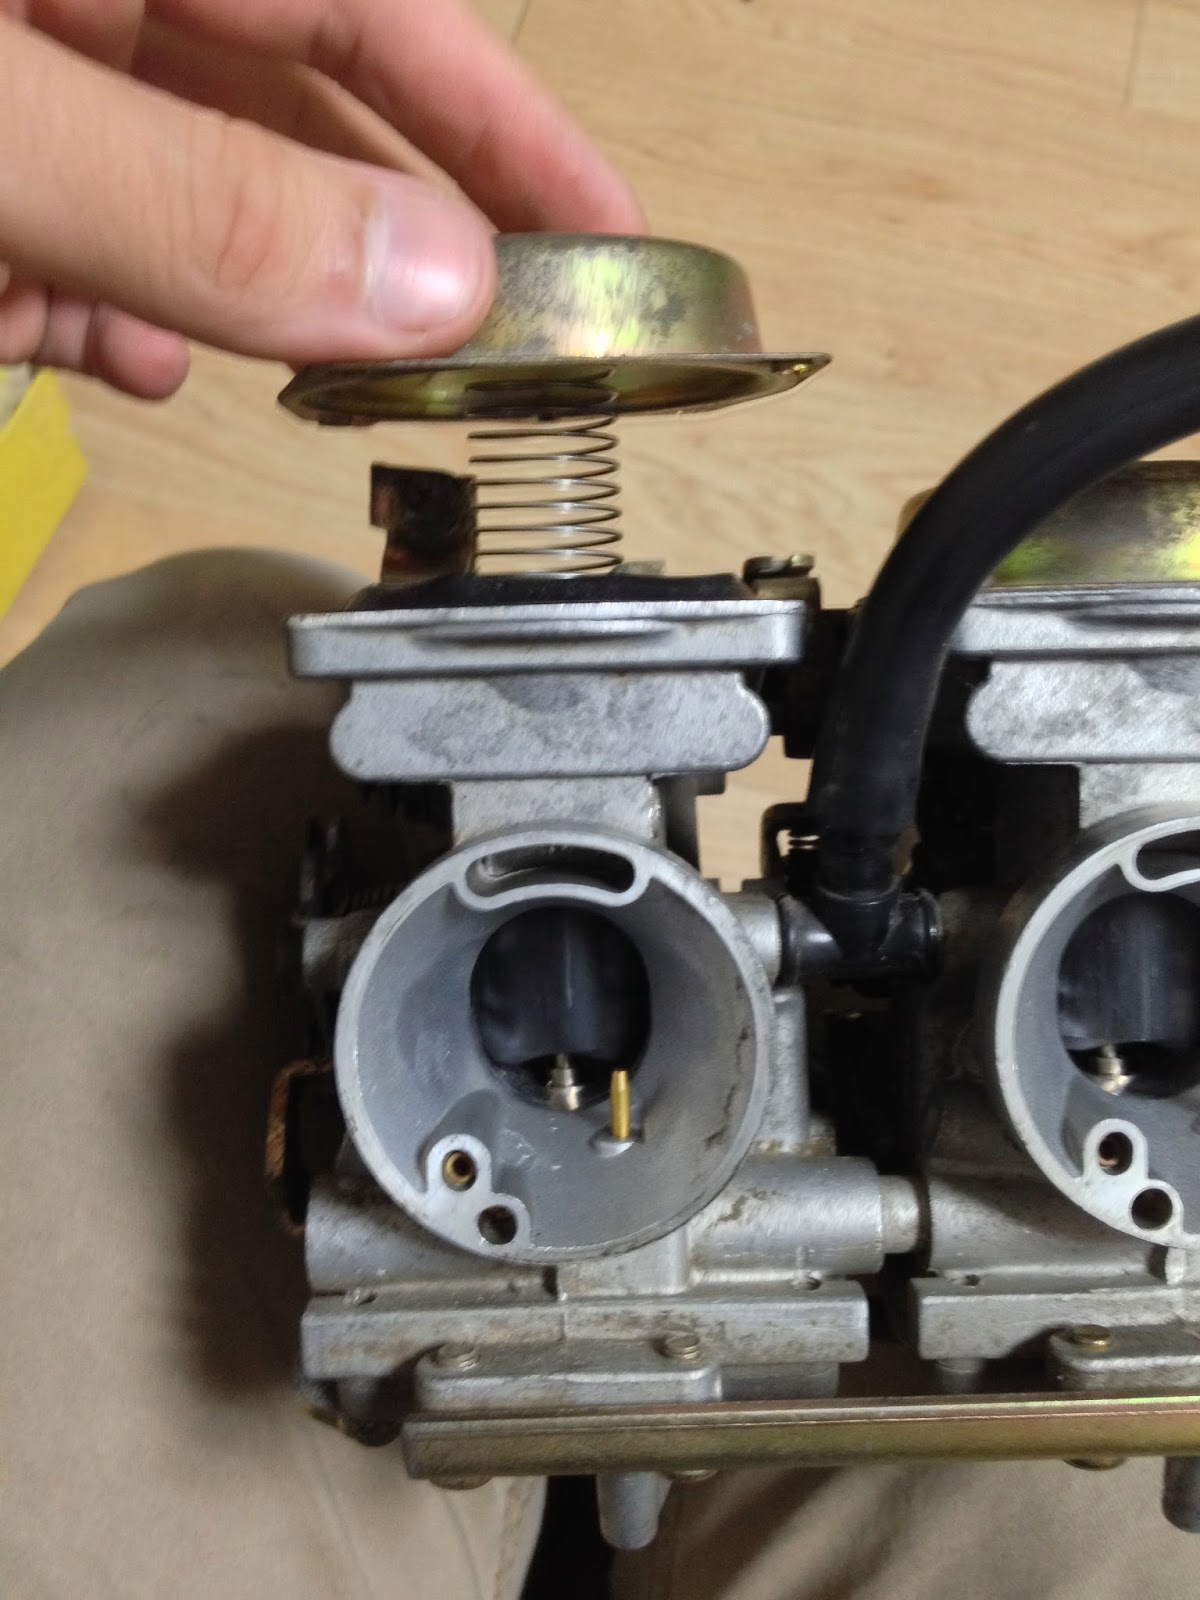 Liancourt Talks!: How to Clean/Rebuild a Motorcycle Carburetor